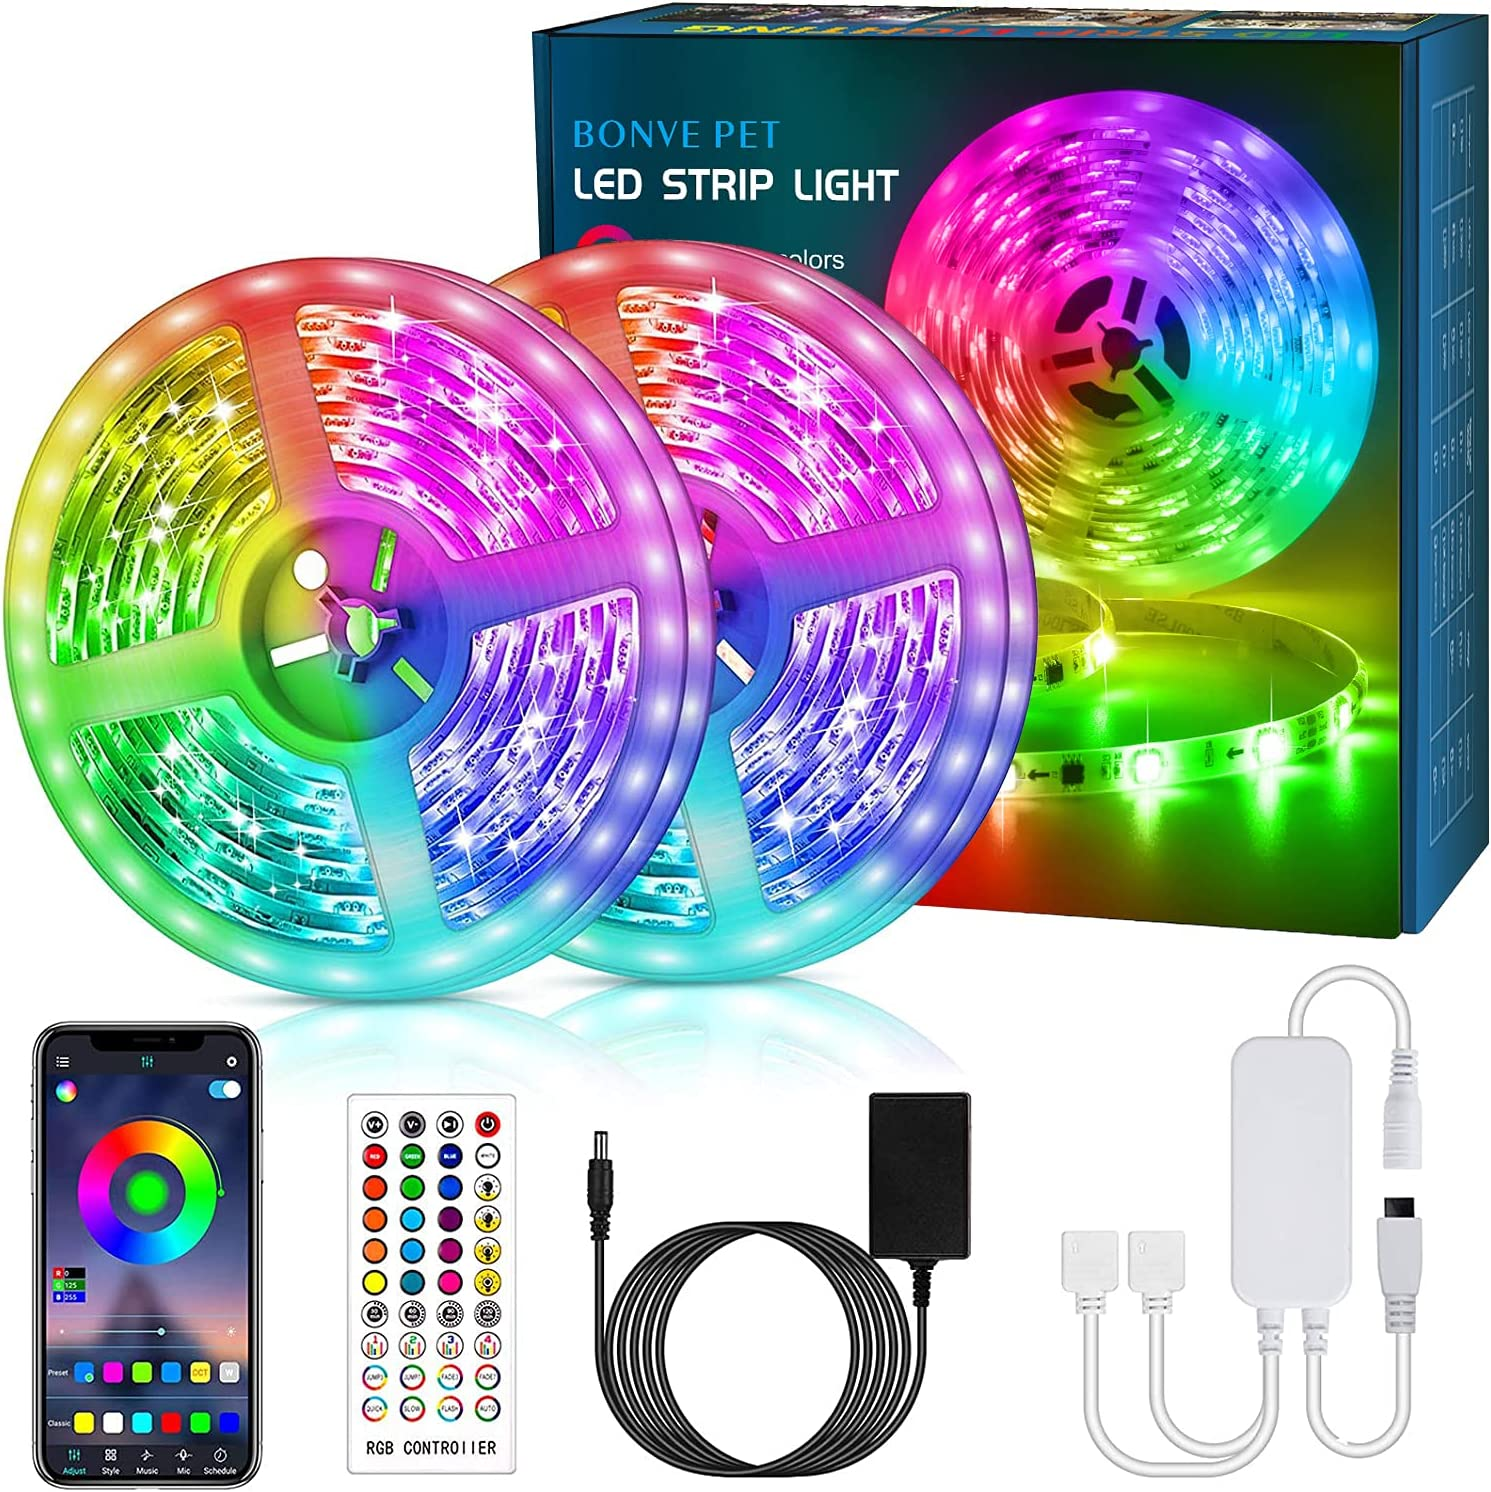 LED Strip Lights 65.6ft, 5050 RGB LED Light Strips with 40 Keys Remote and APP Control, Music Sync, Color Changing Lights for Bedroom, Room, Kitchen, Home Decoration